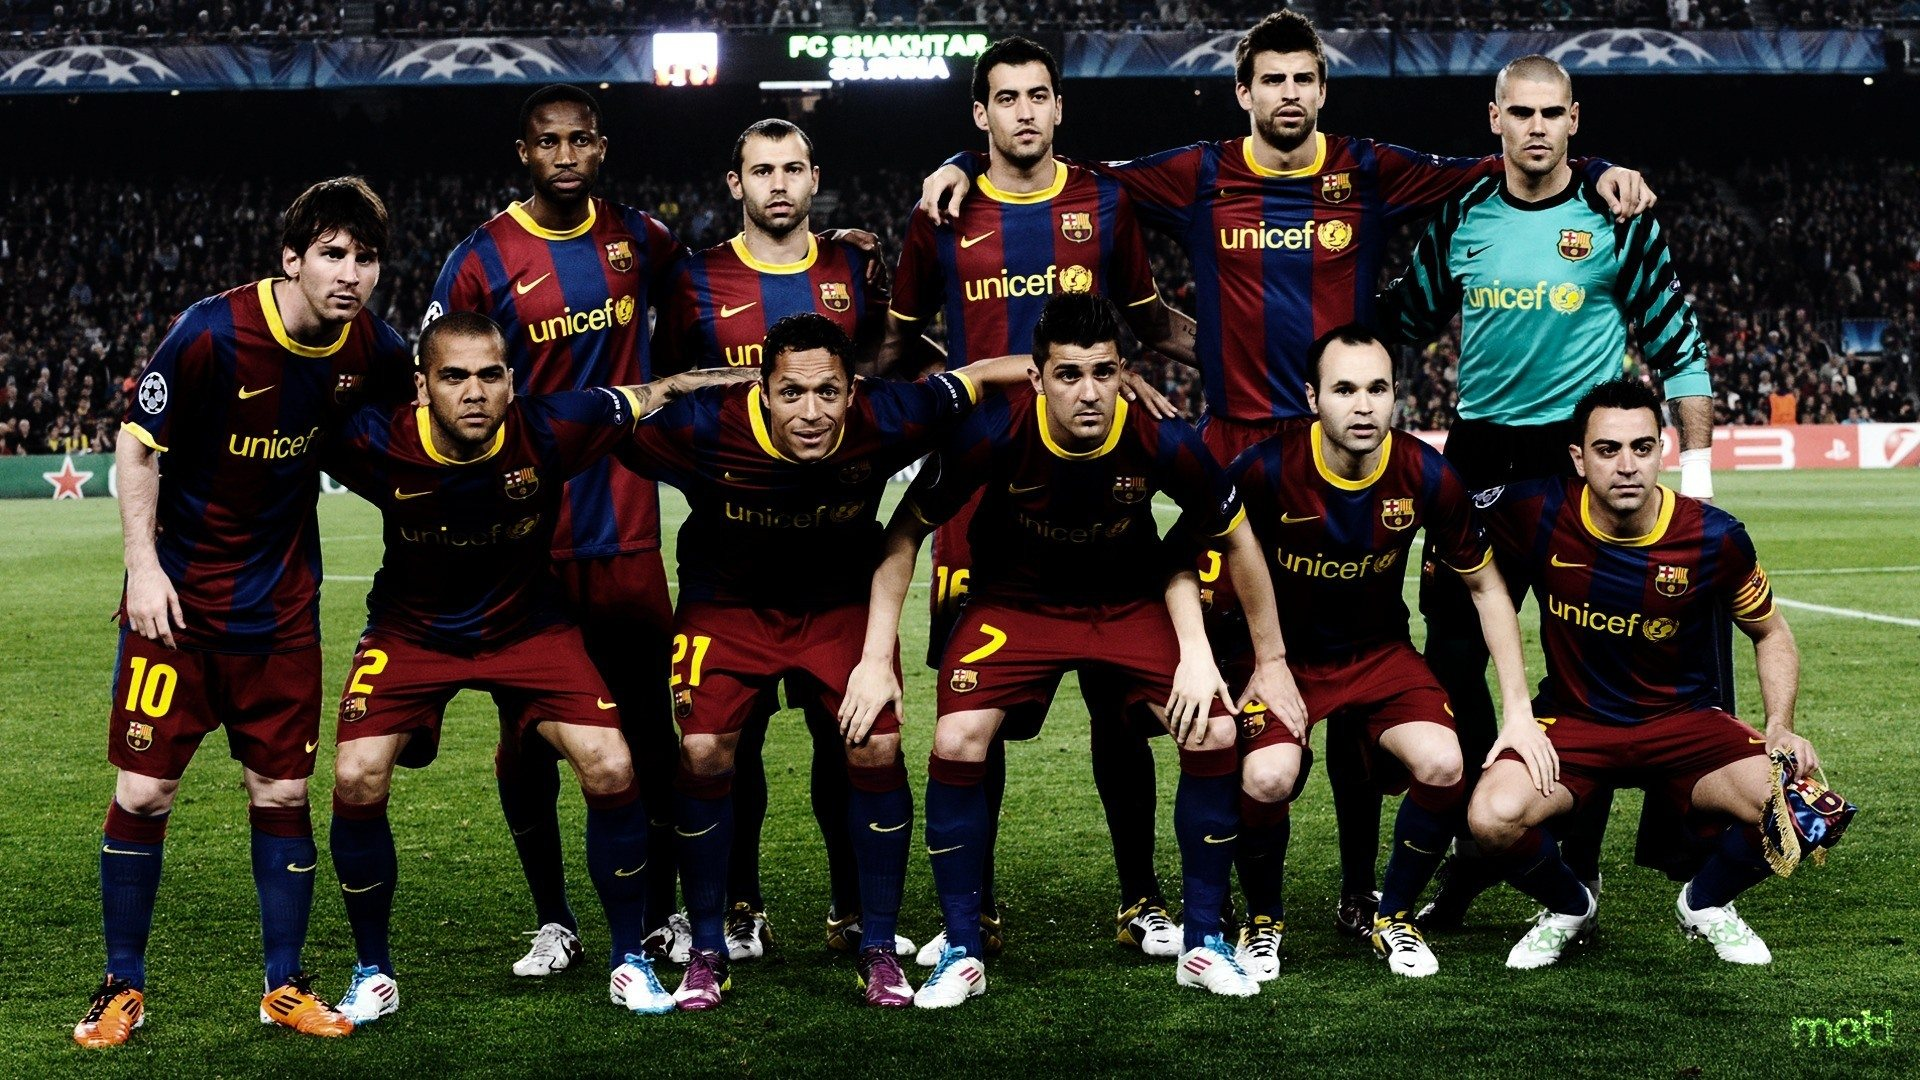 Fc Barcelona Team Wallpaper 4